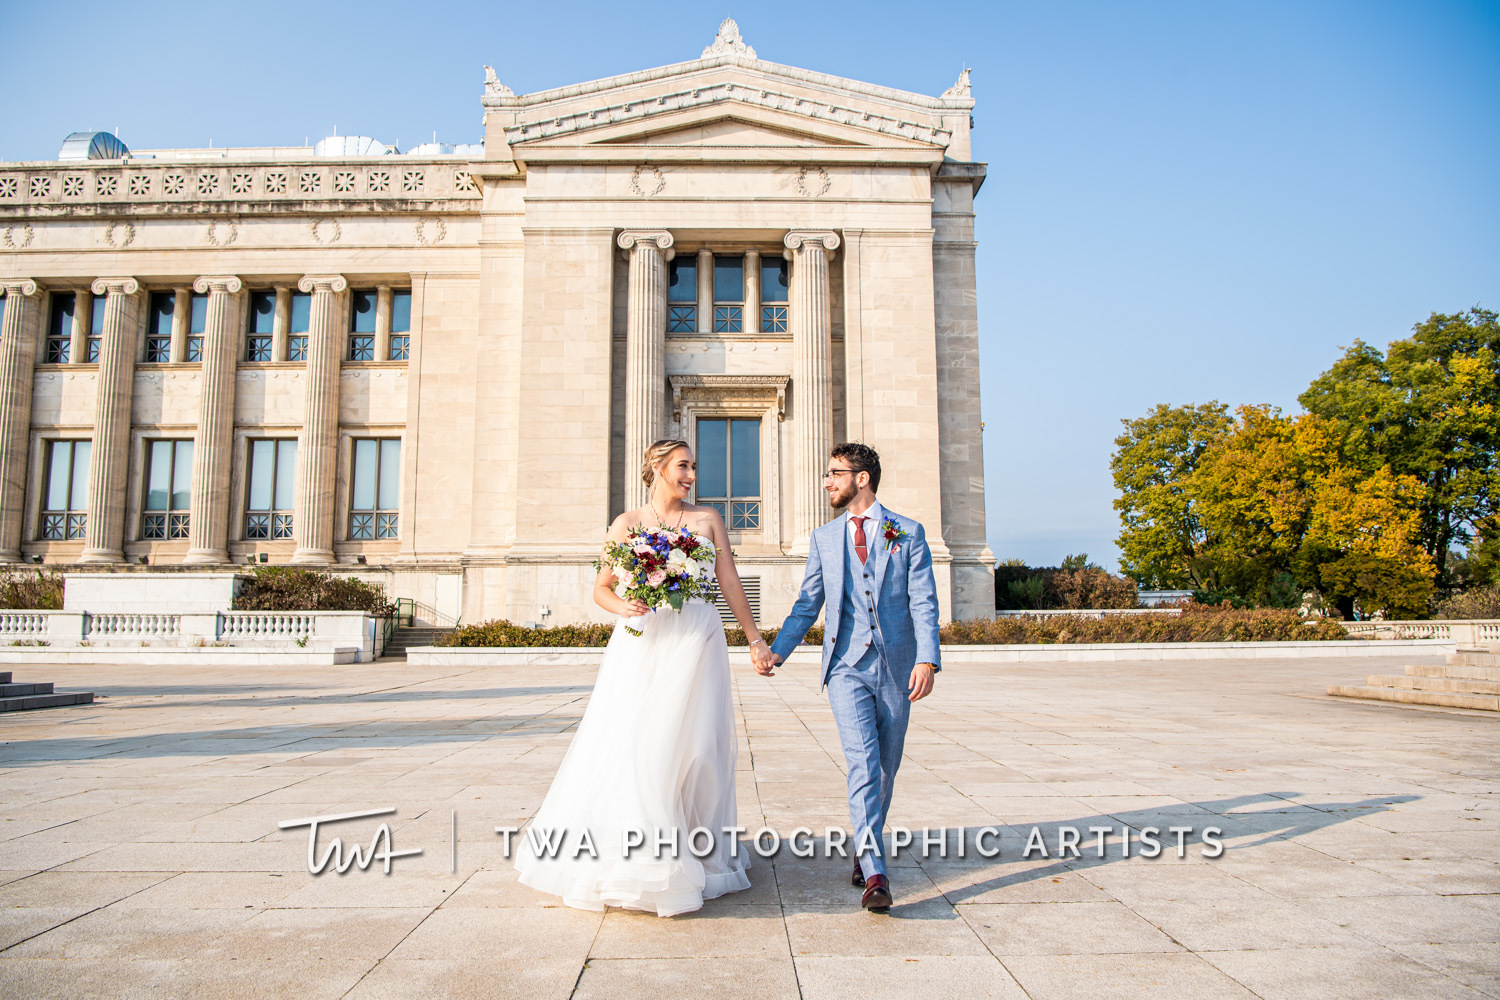 Chicago-Wedding-Photographer-TWA-Photographic-Artists-City-Hall-Event_Masterova_Alkhateeb_AA-0313